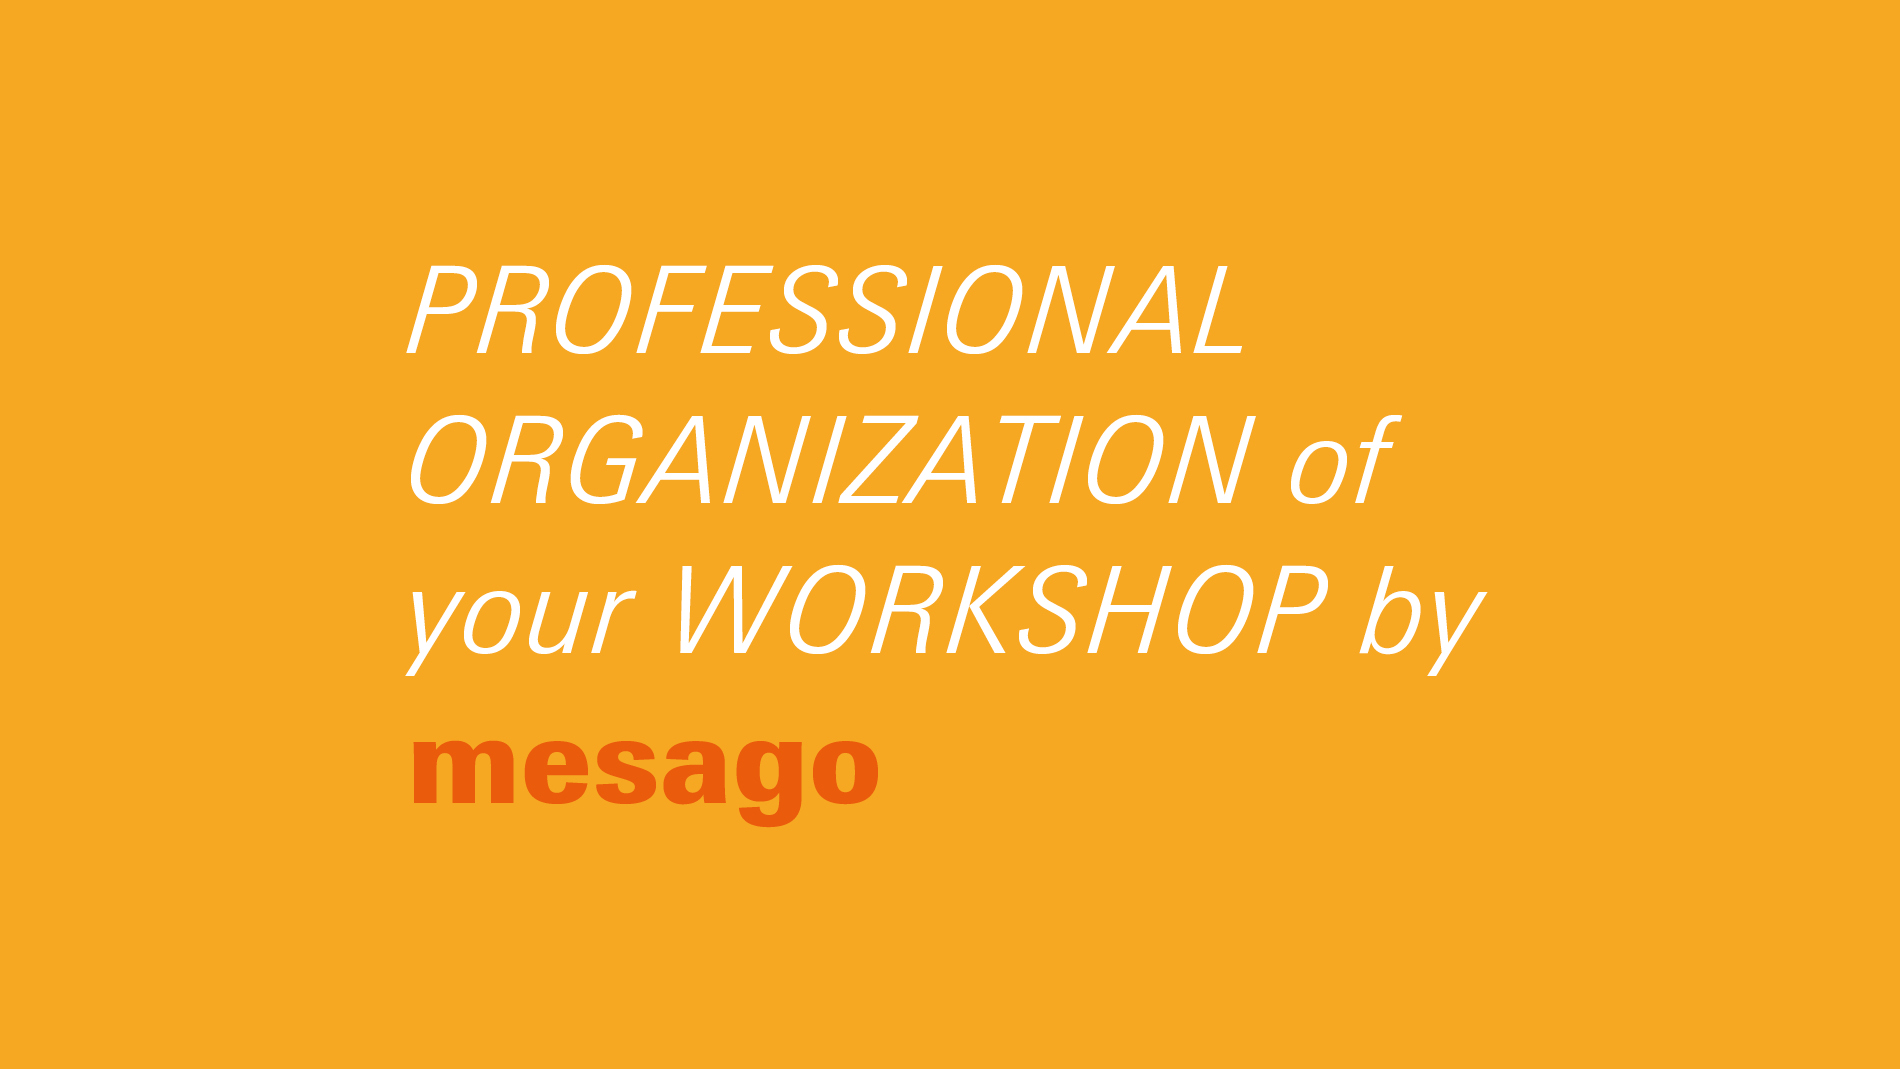 Professional organization of your workshop by Mesago